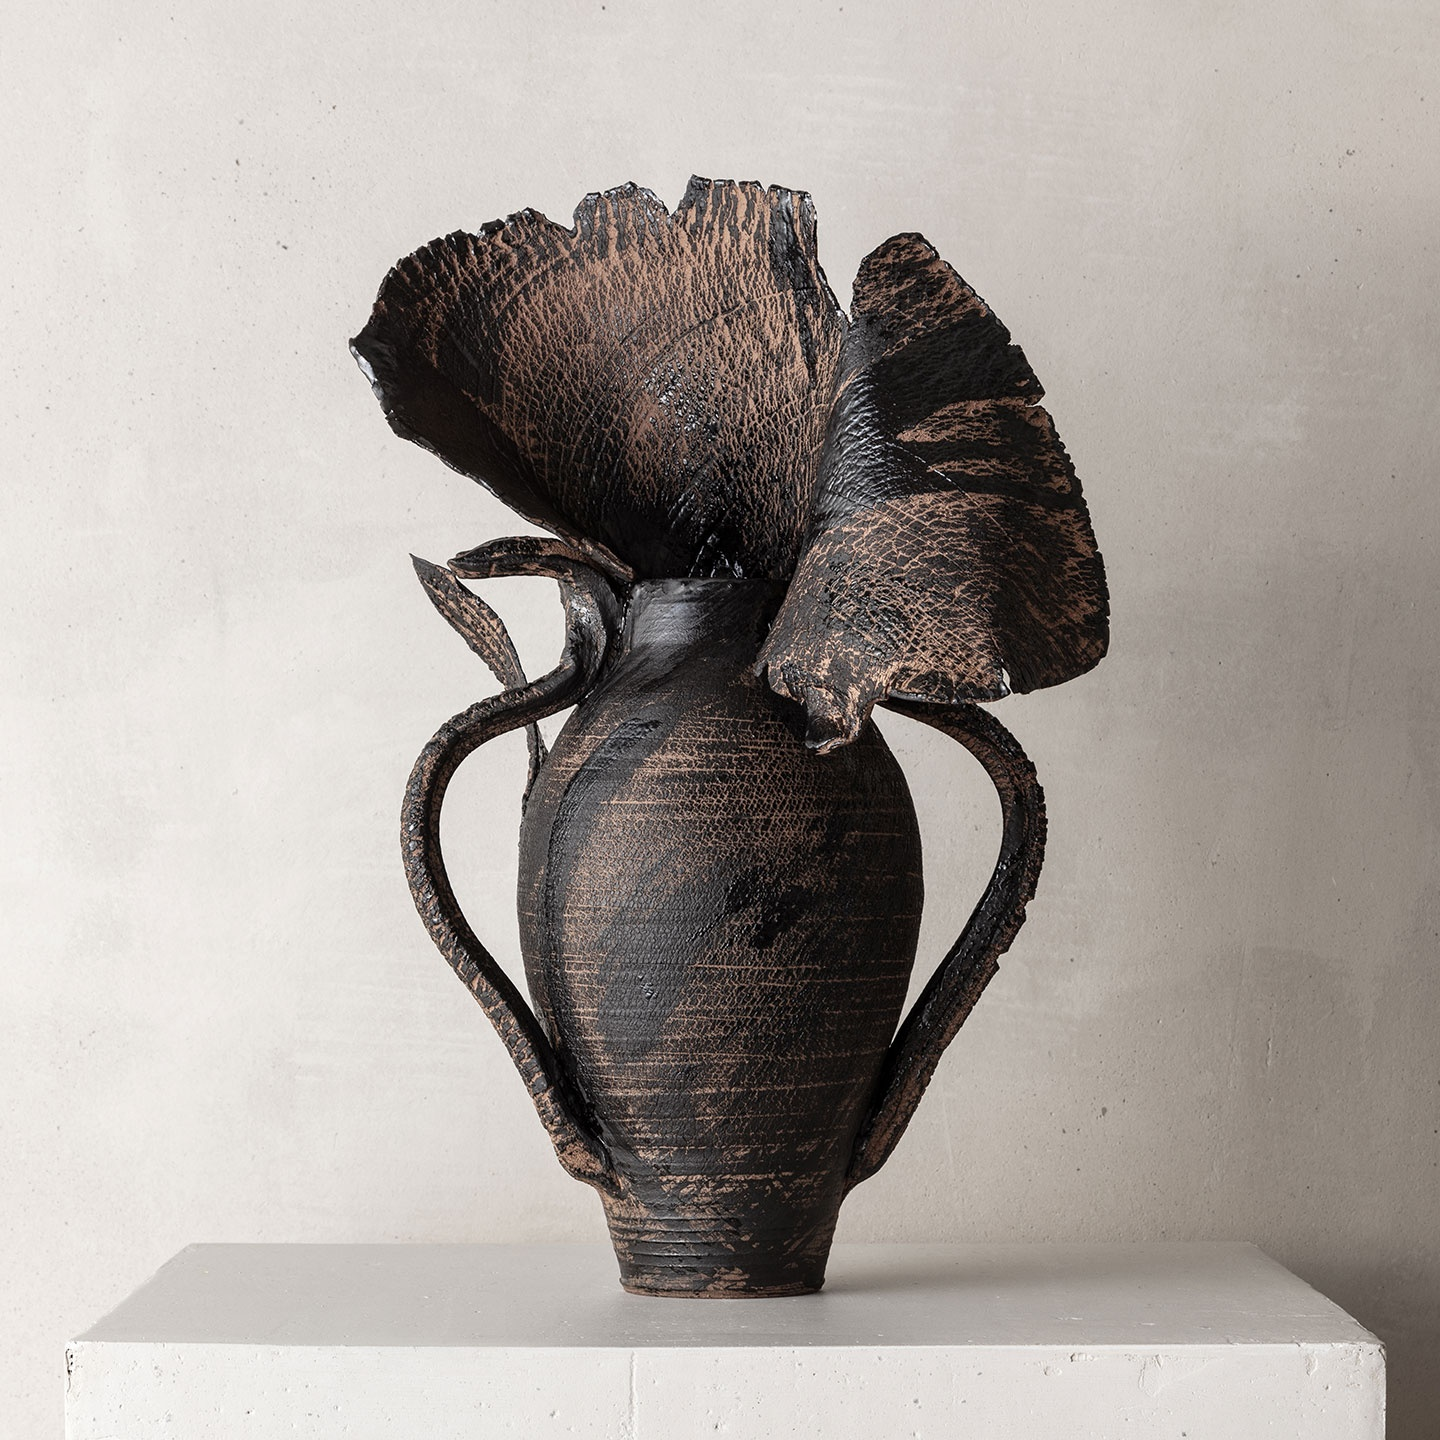 CHTHONIC VESSEL 06Peter Speliopoulos, Peter Speliopoulos Ceramics, Peter Speliopoulos Artist, Peter Speliopoulos Fashion Designer, Contemporary Ceramics, Contemporary Greek Ceramics, Interior Design Accessories.